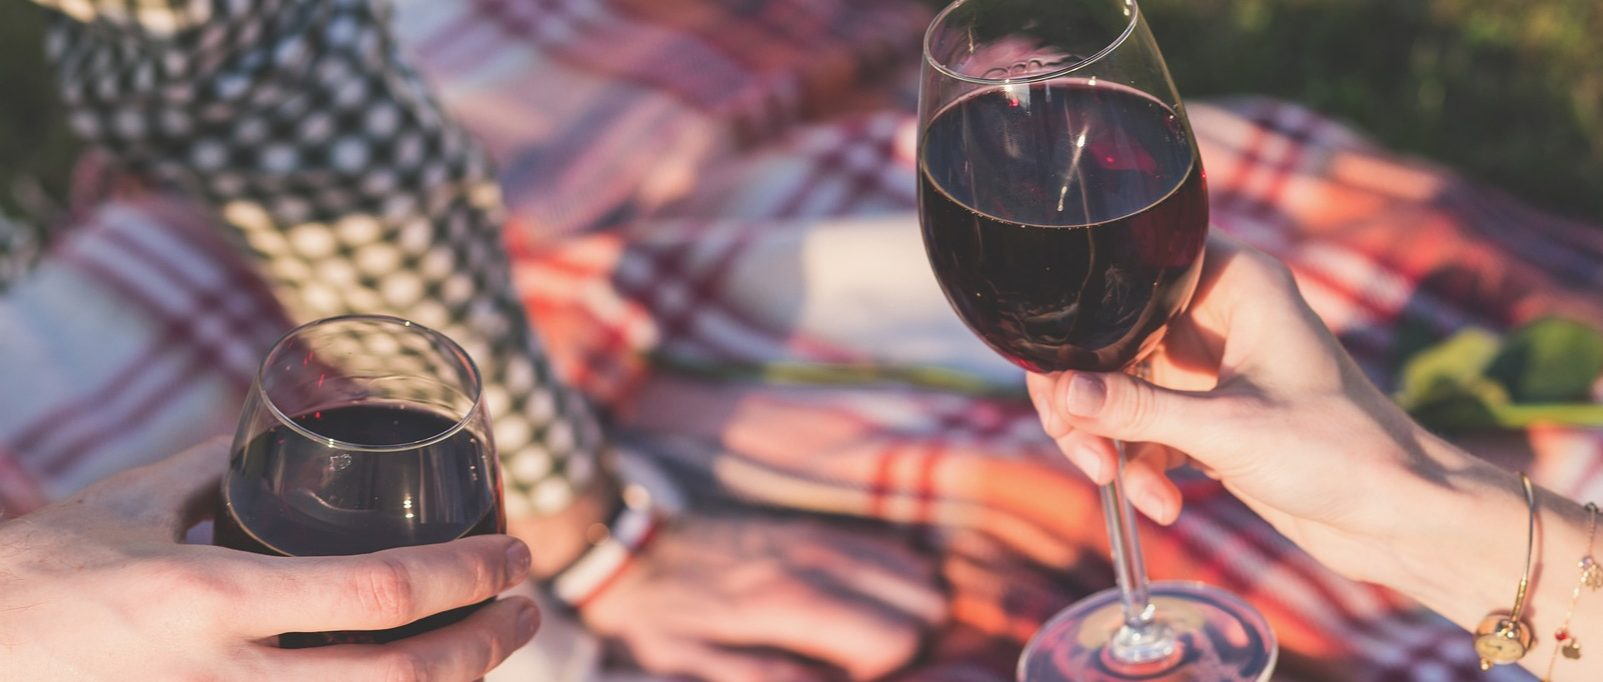 Spanish Wines You Should Try